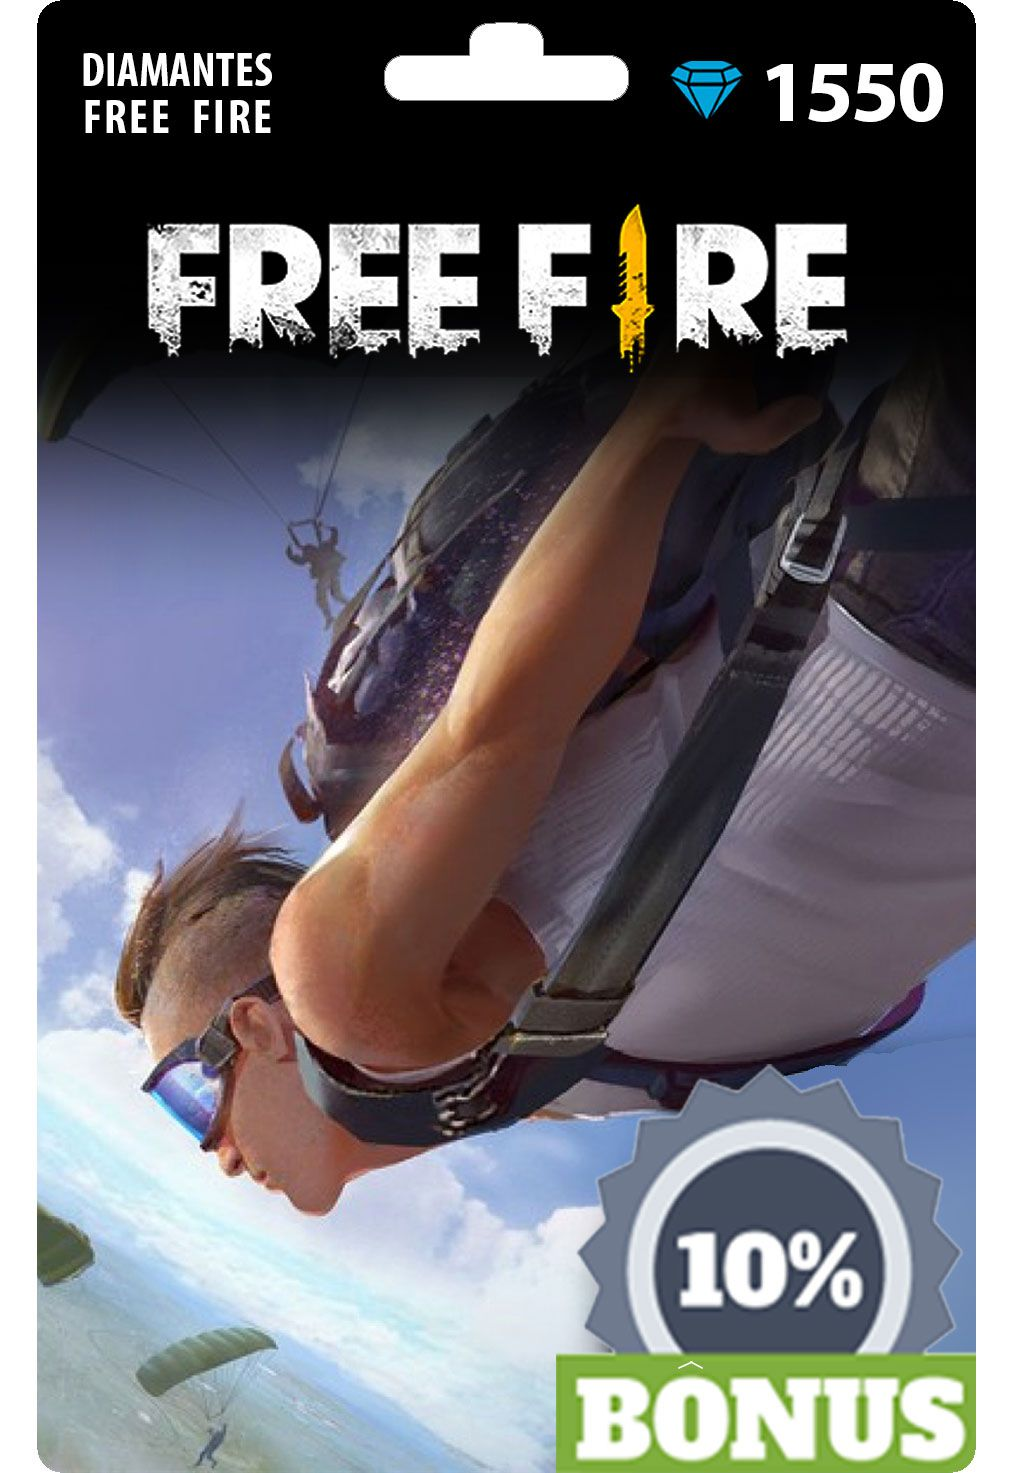 Free Fire: 1.550 Diamantes